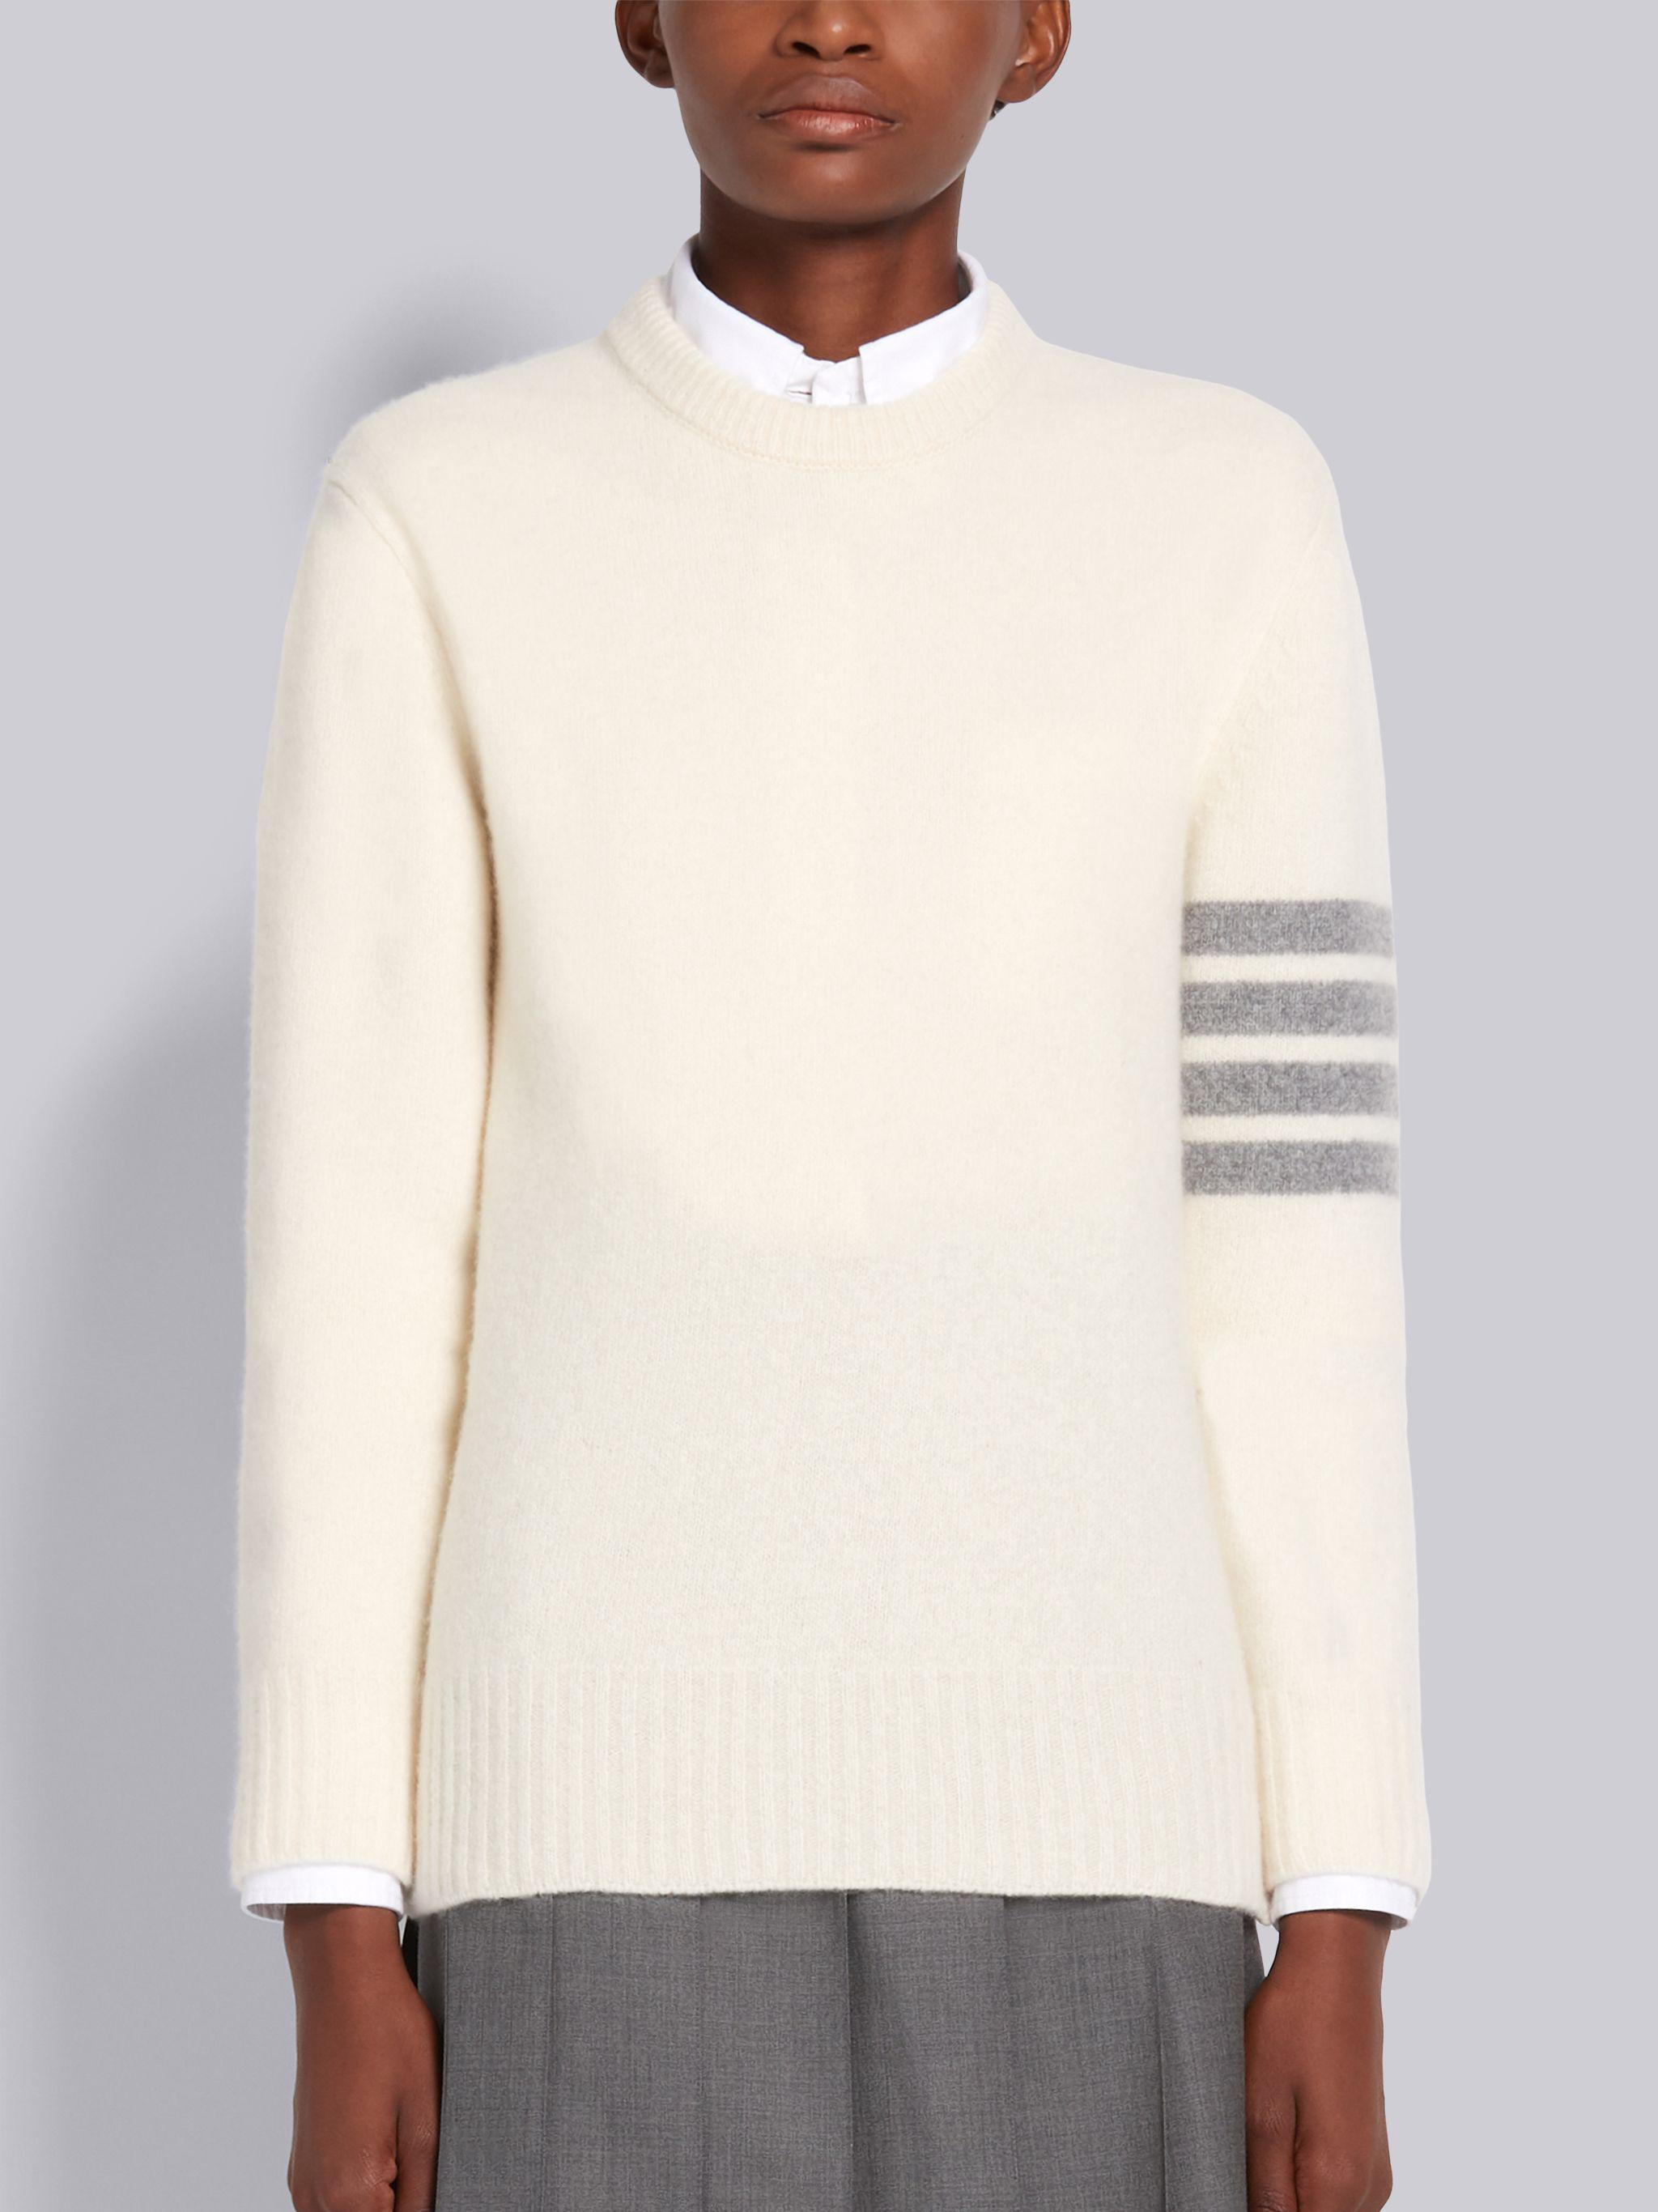 White Overwashed Cashmere Jersey Crewneck 4-Bar Pullover